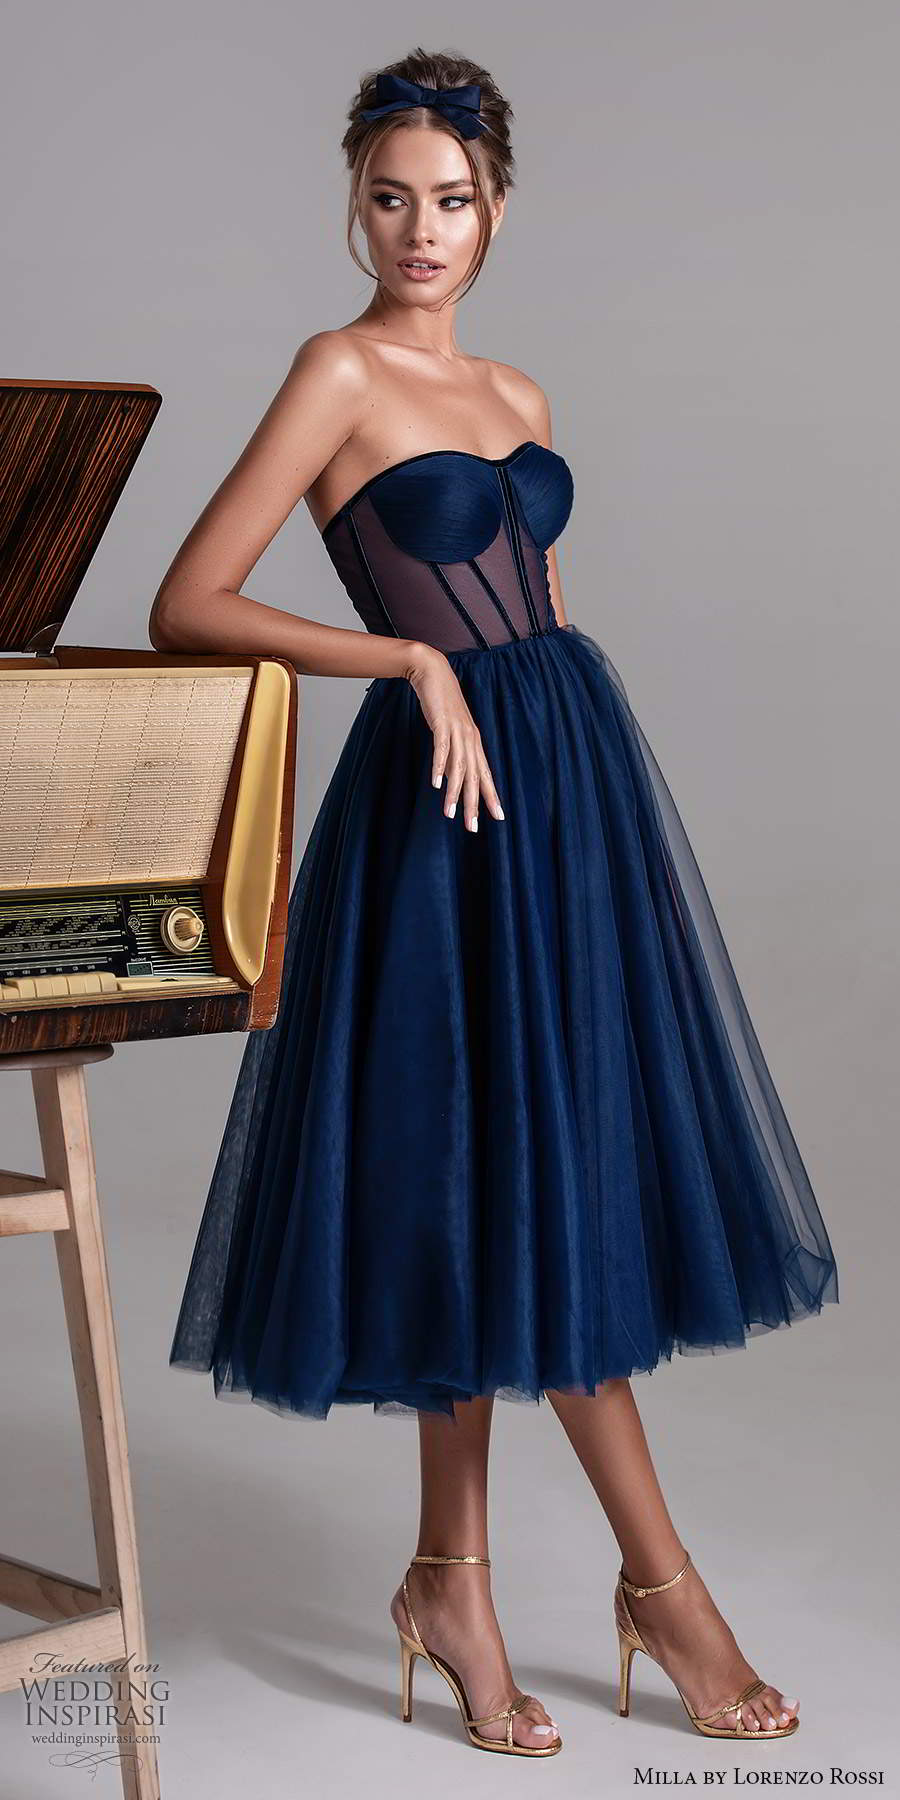 milla by lorenzo rossi 2020 rtw strapless semi sweetheart sheer corset bodice a line ball gown tea length evening dress navy blue color (27) mv